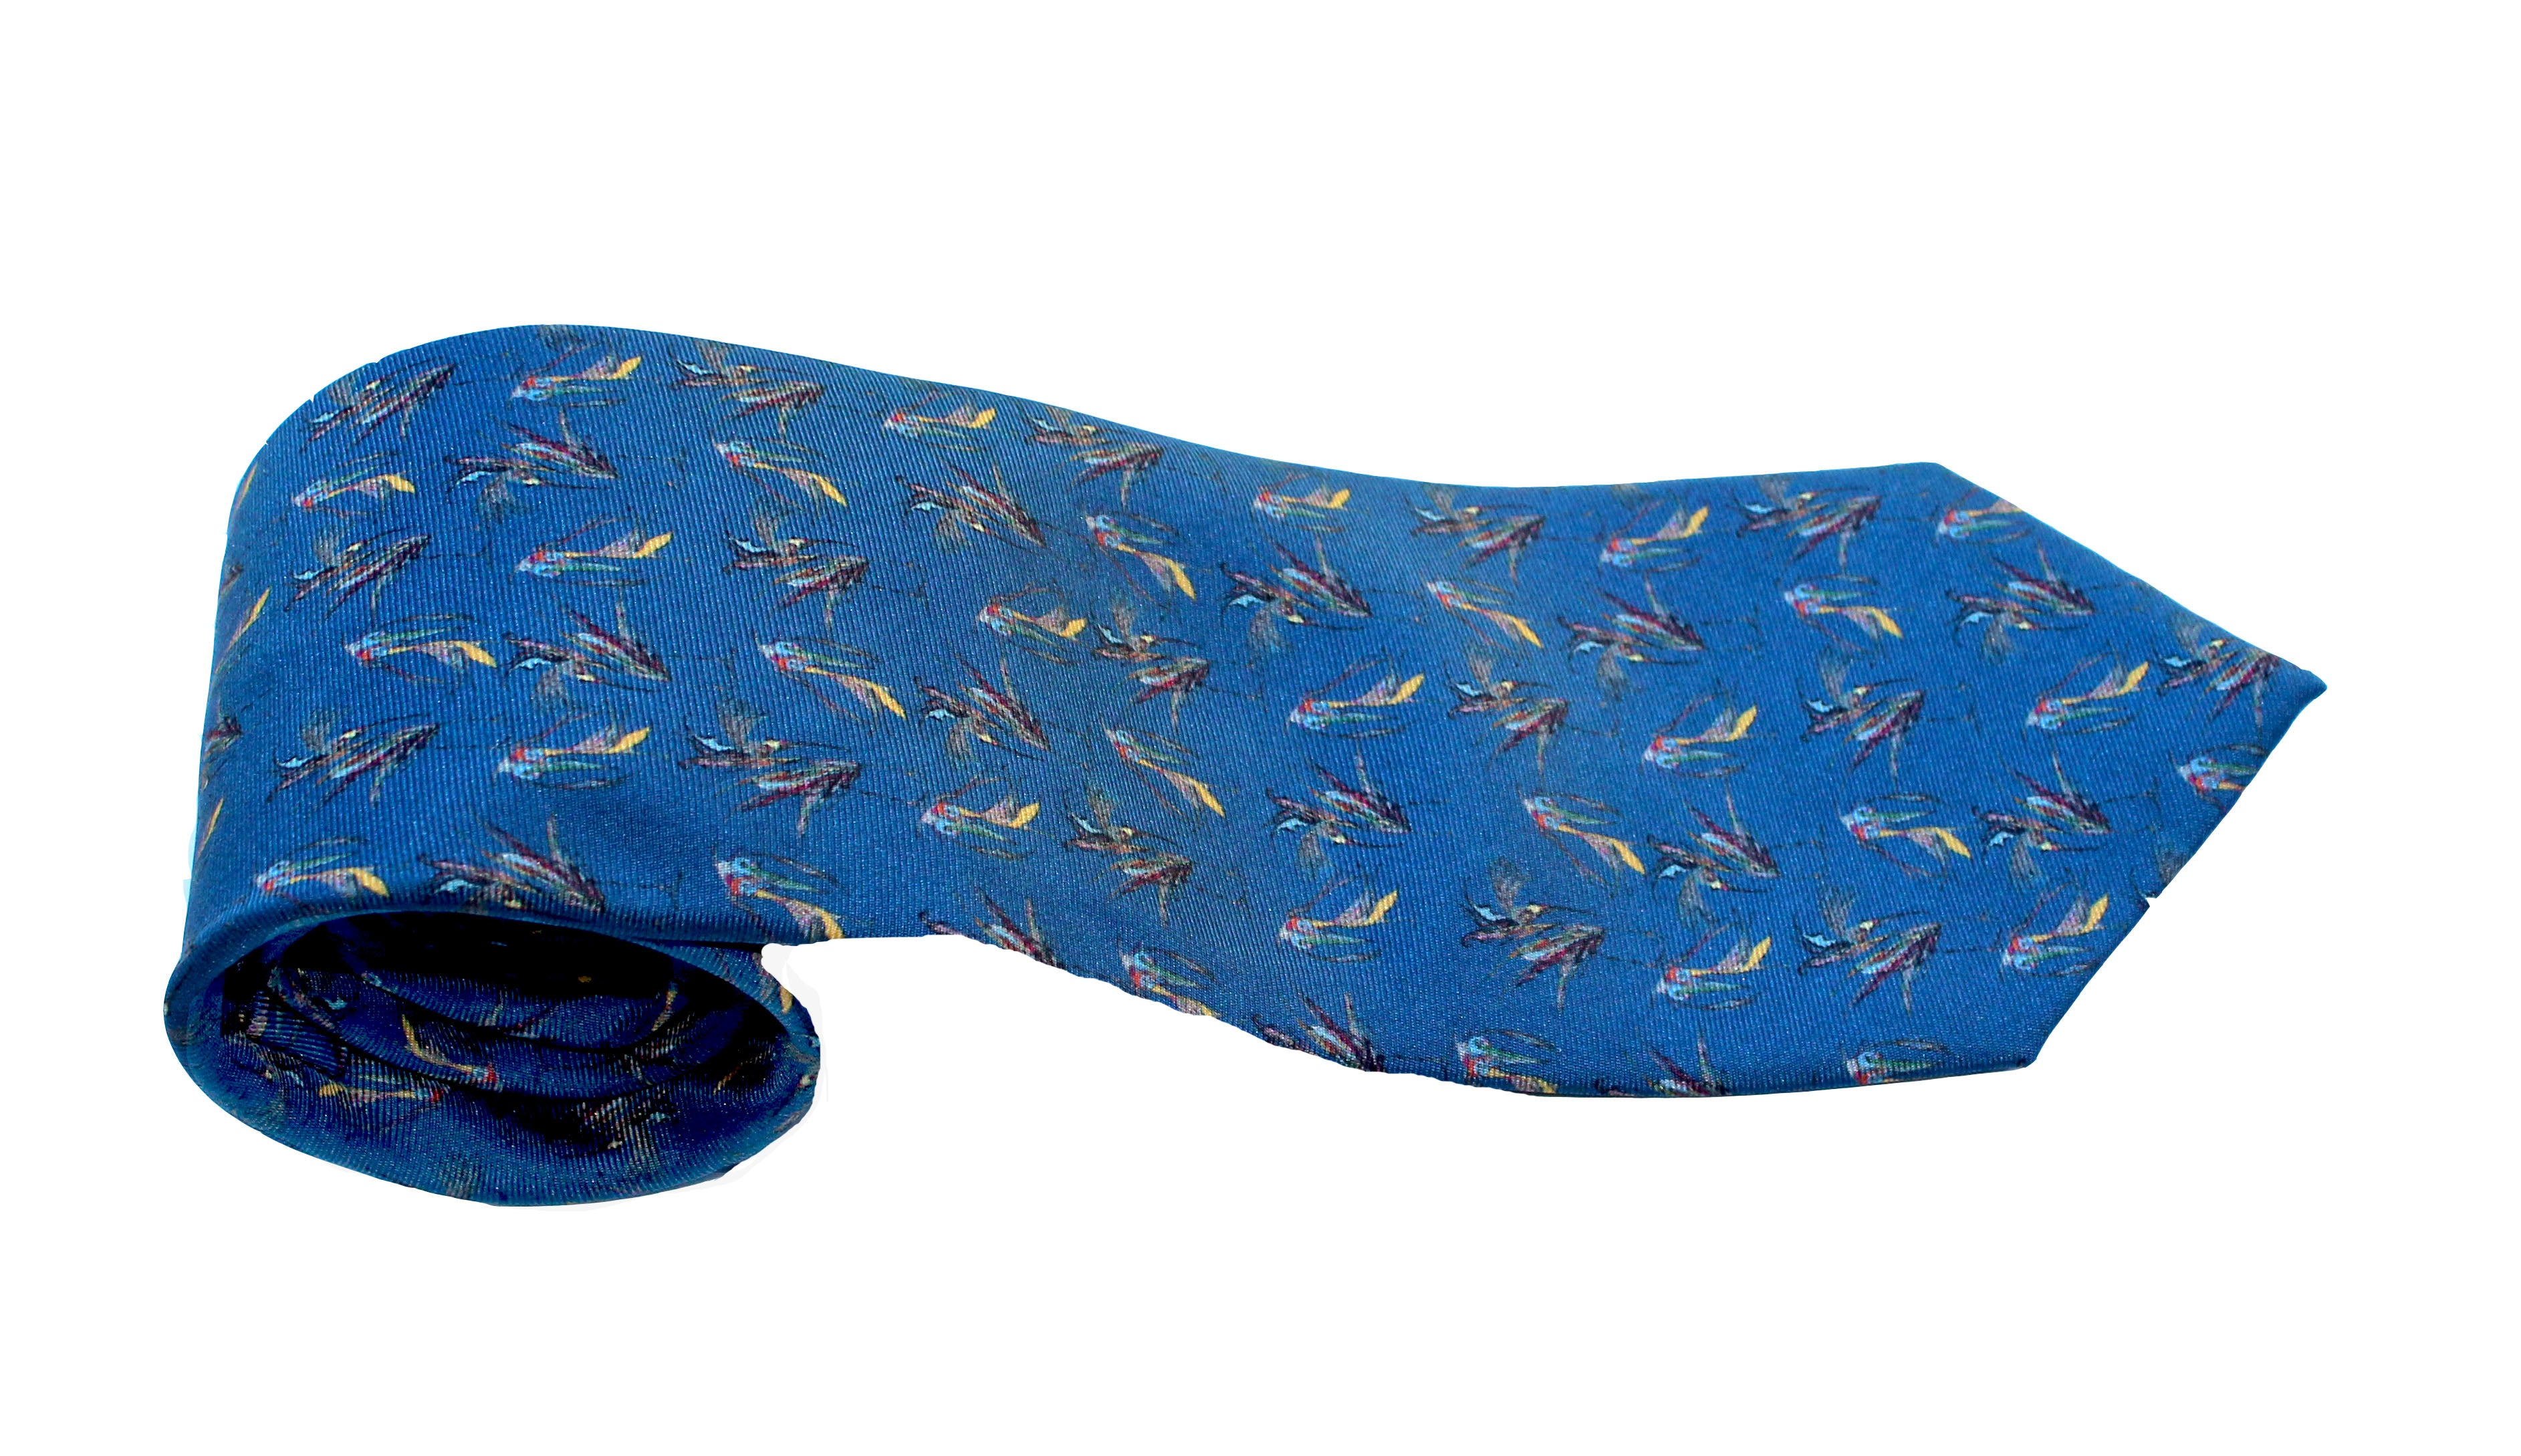 100% Silk Twill Tie in Navy Birds Pattern